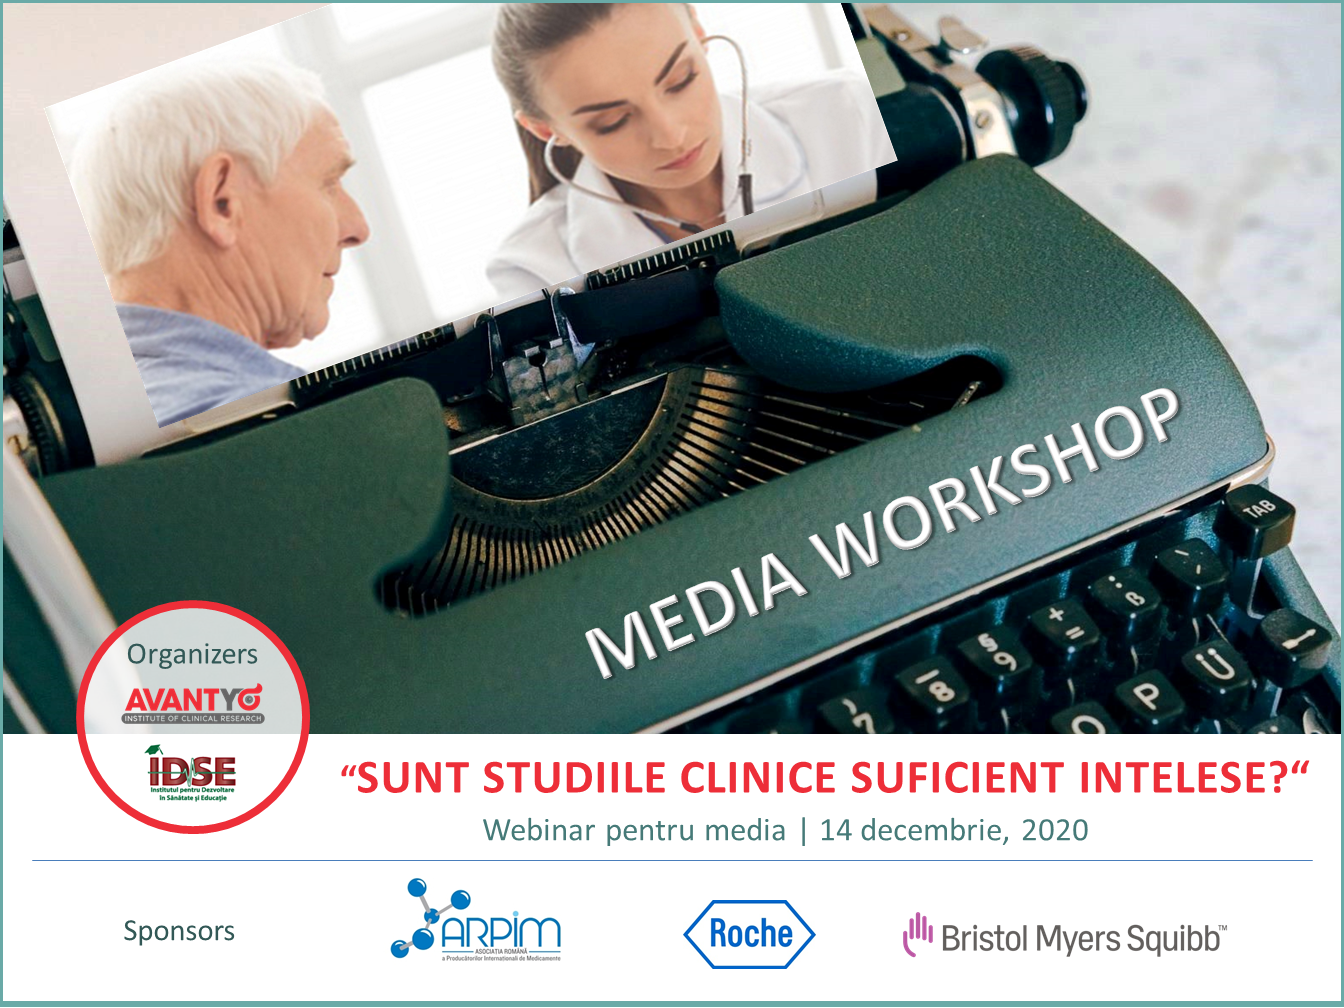 """TESTIMONIALS - """"Are the clinical trials sufficiently understood?"""" 